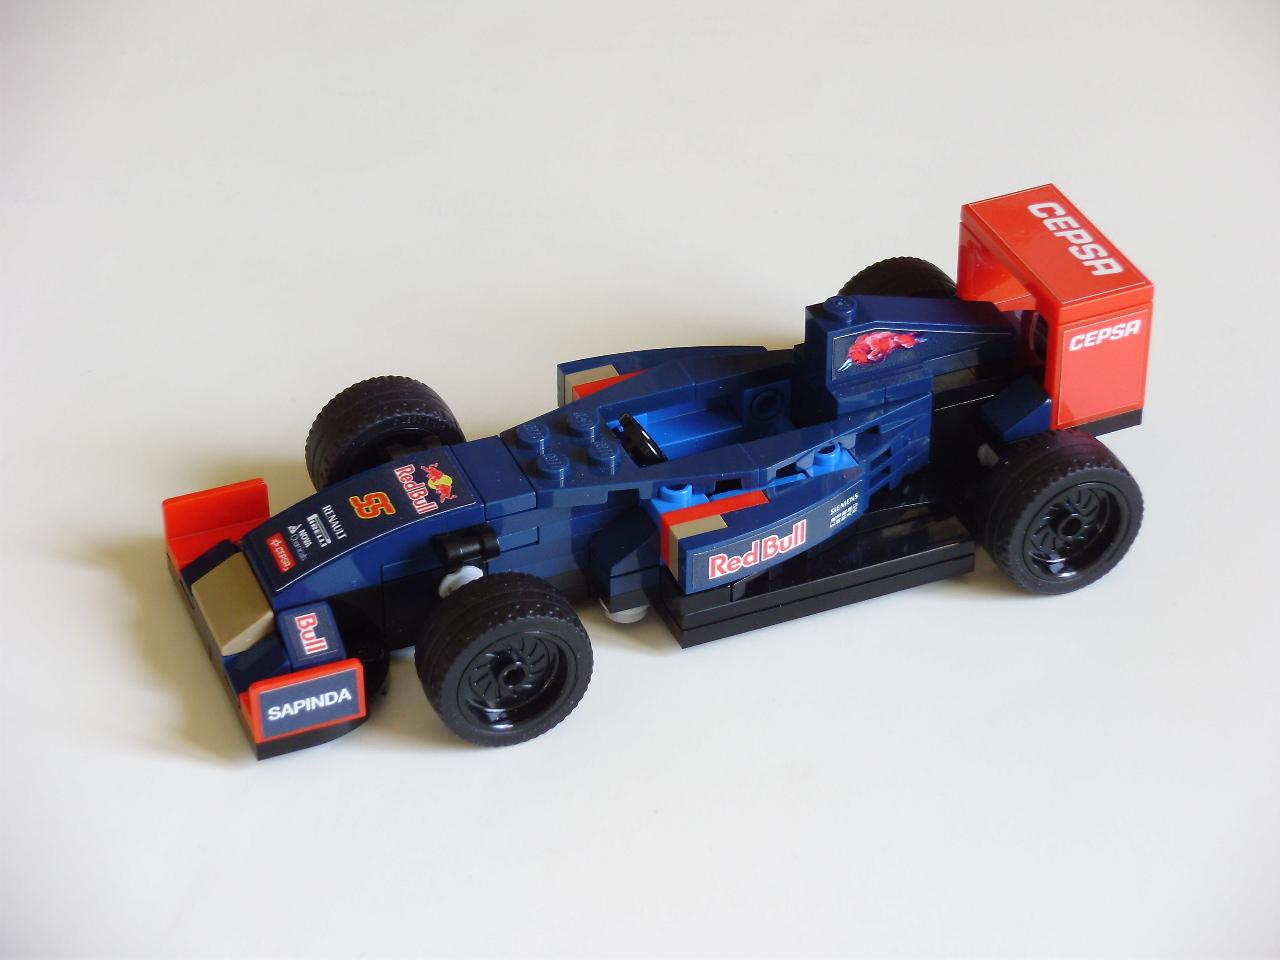 f1 speed champions all f1 teams custom stickers brickset forum. Black Bedroom Furniture Sets. Home Design Ideas